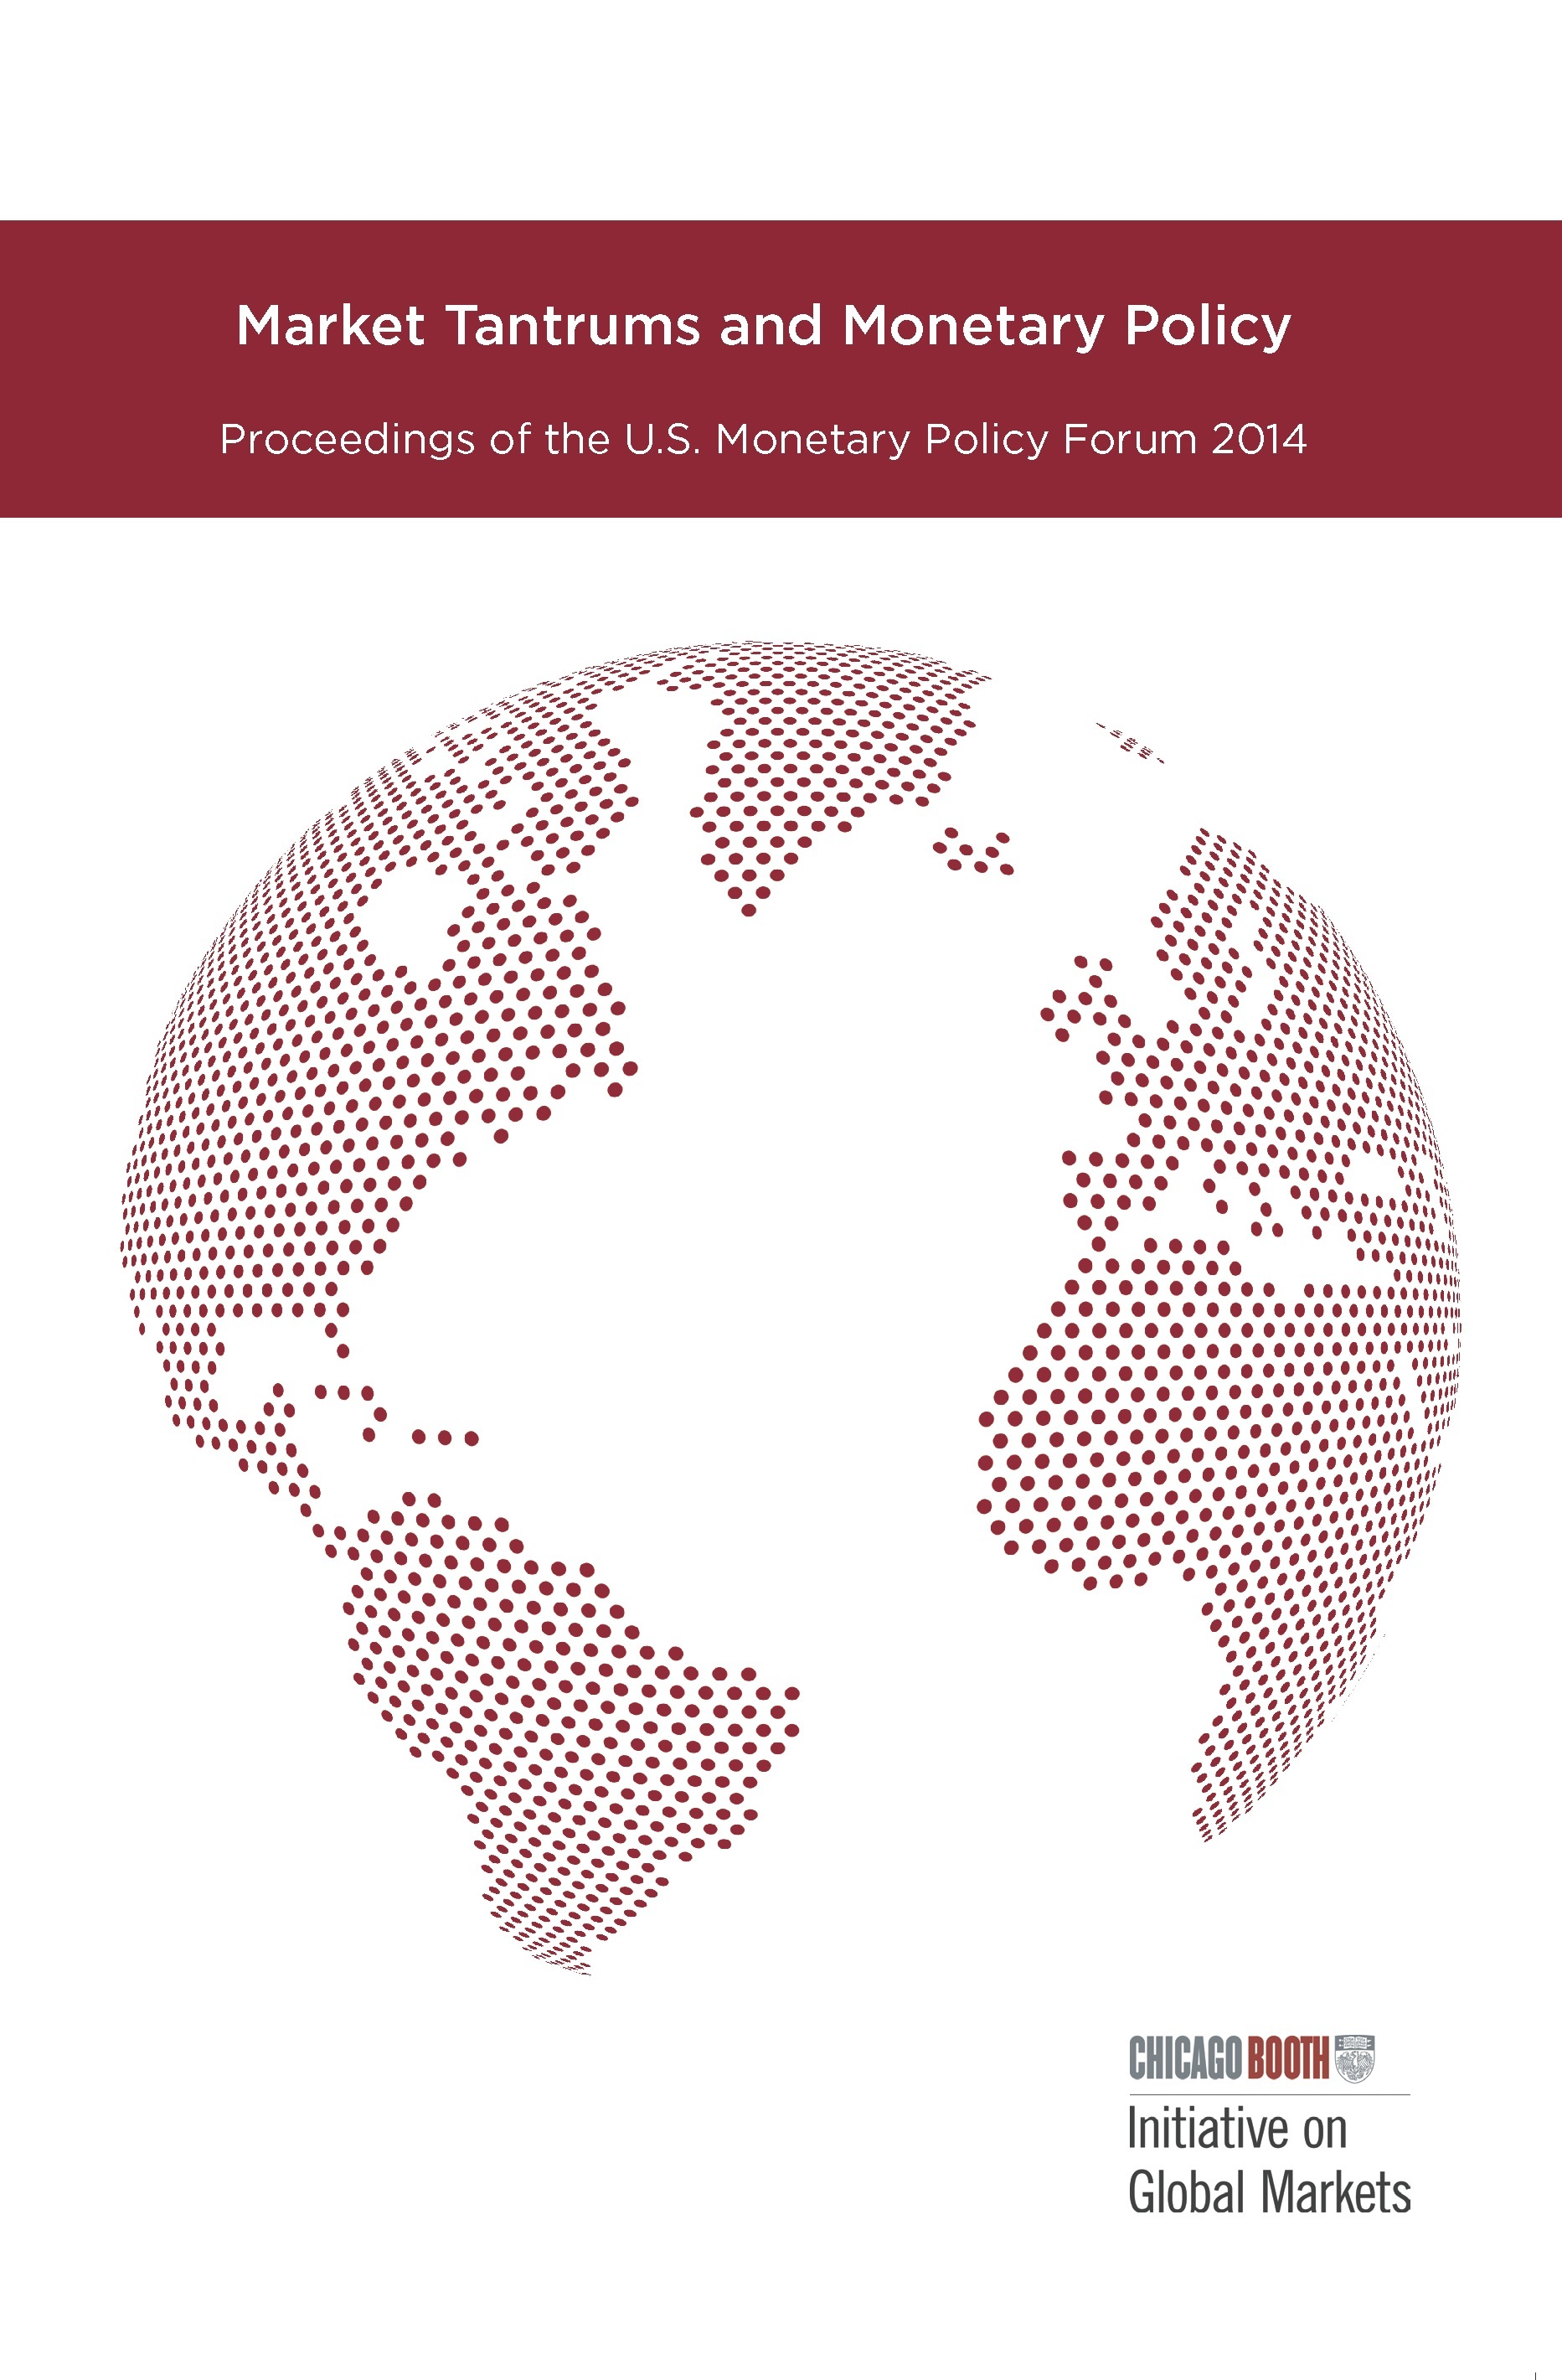 Market Tantrums and Monetary Policy: Proceedings of the U.S.           Monetary Policy Forum